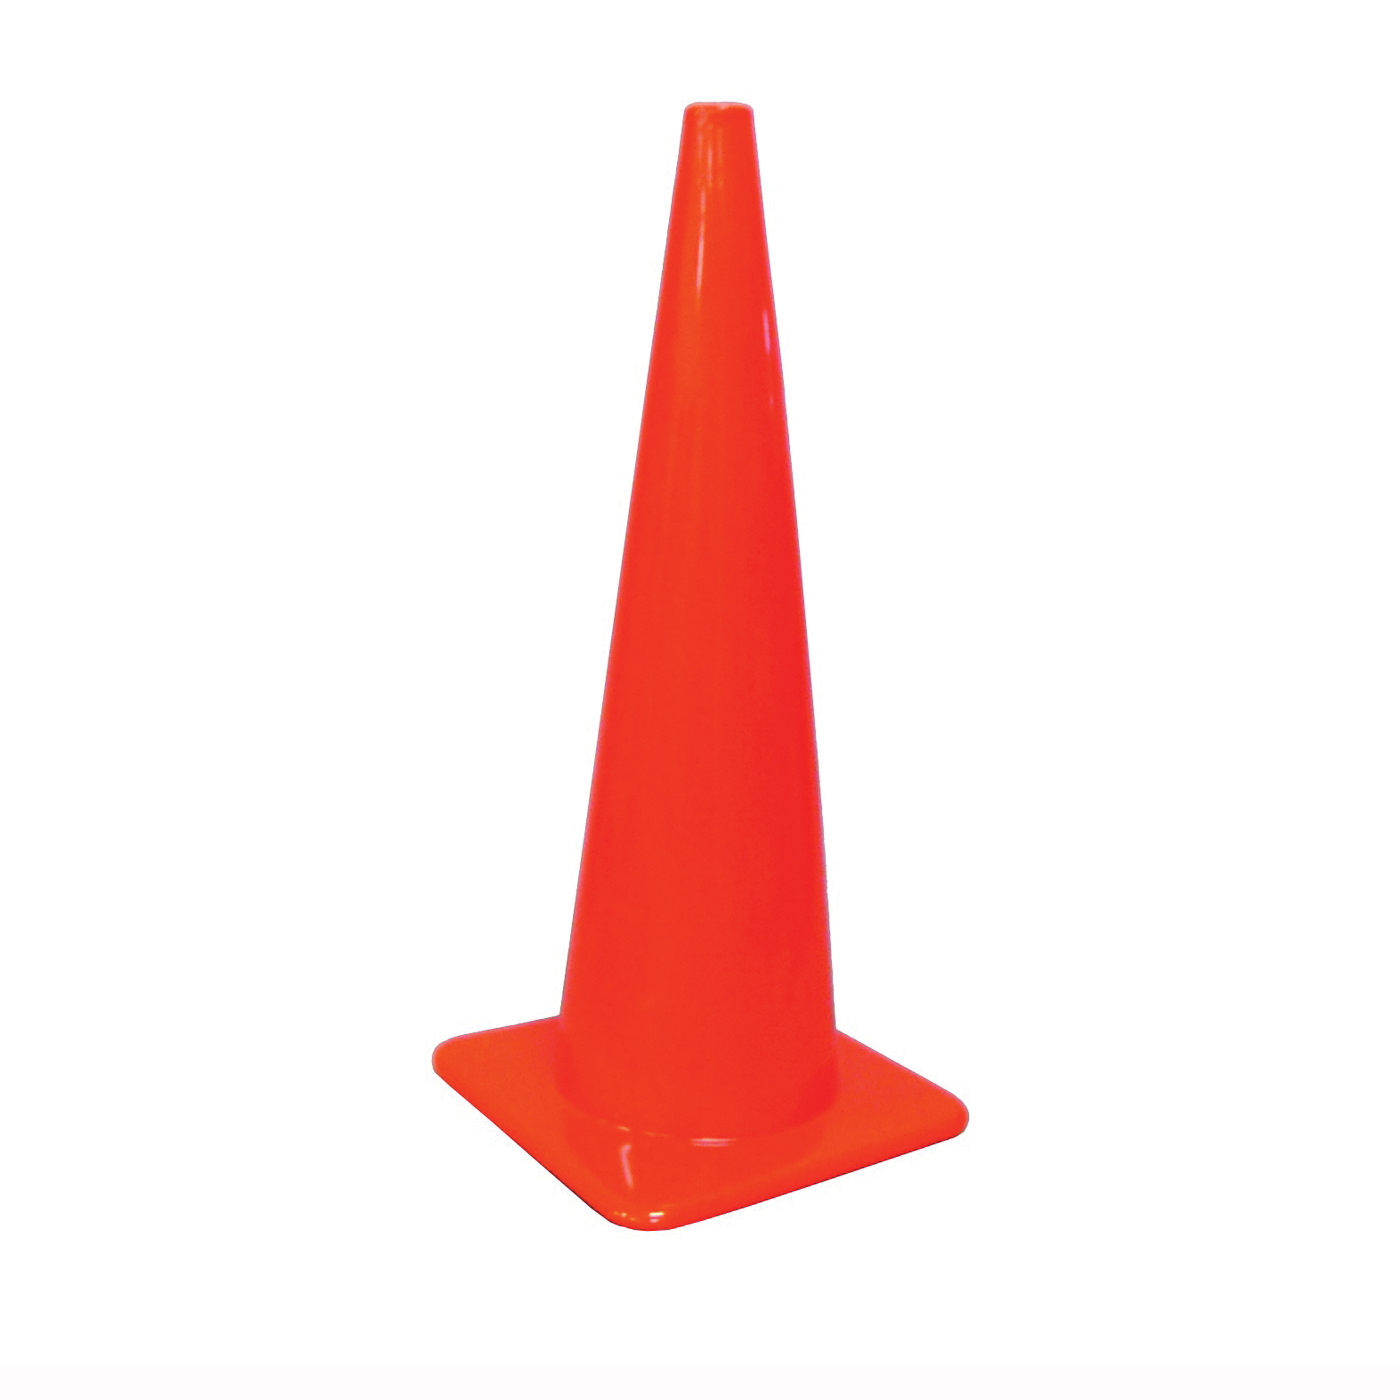 Picture of HY-KO SC-36 Traffic Safety Cone, 36 in H Cone, Vinyl Cone, Fluorescent Orange Cone